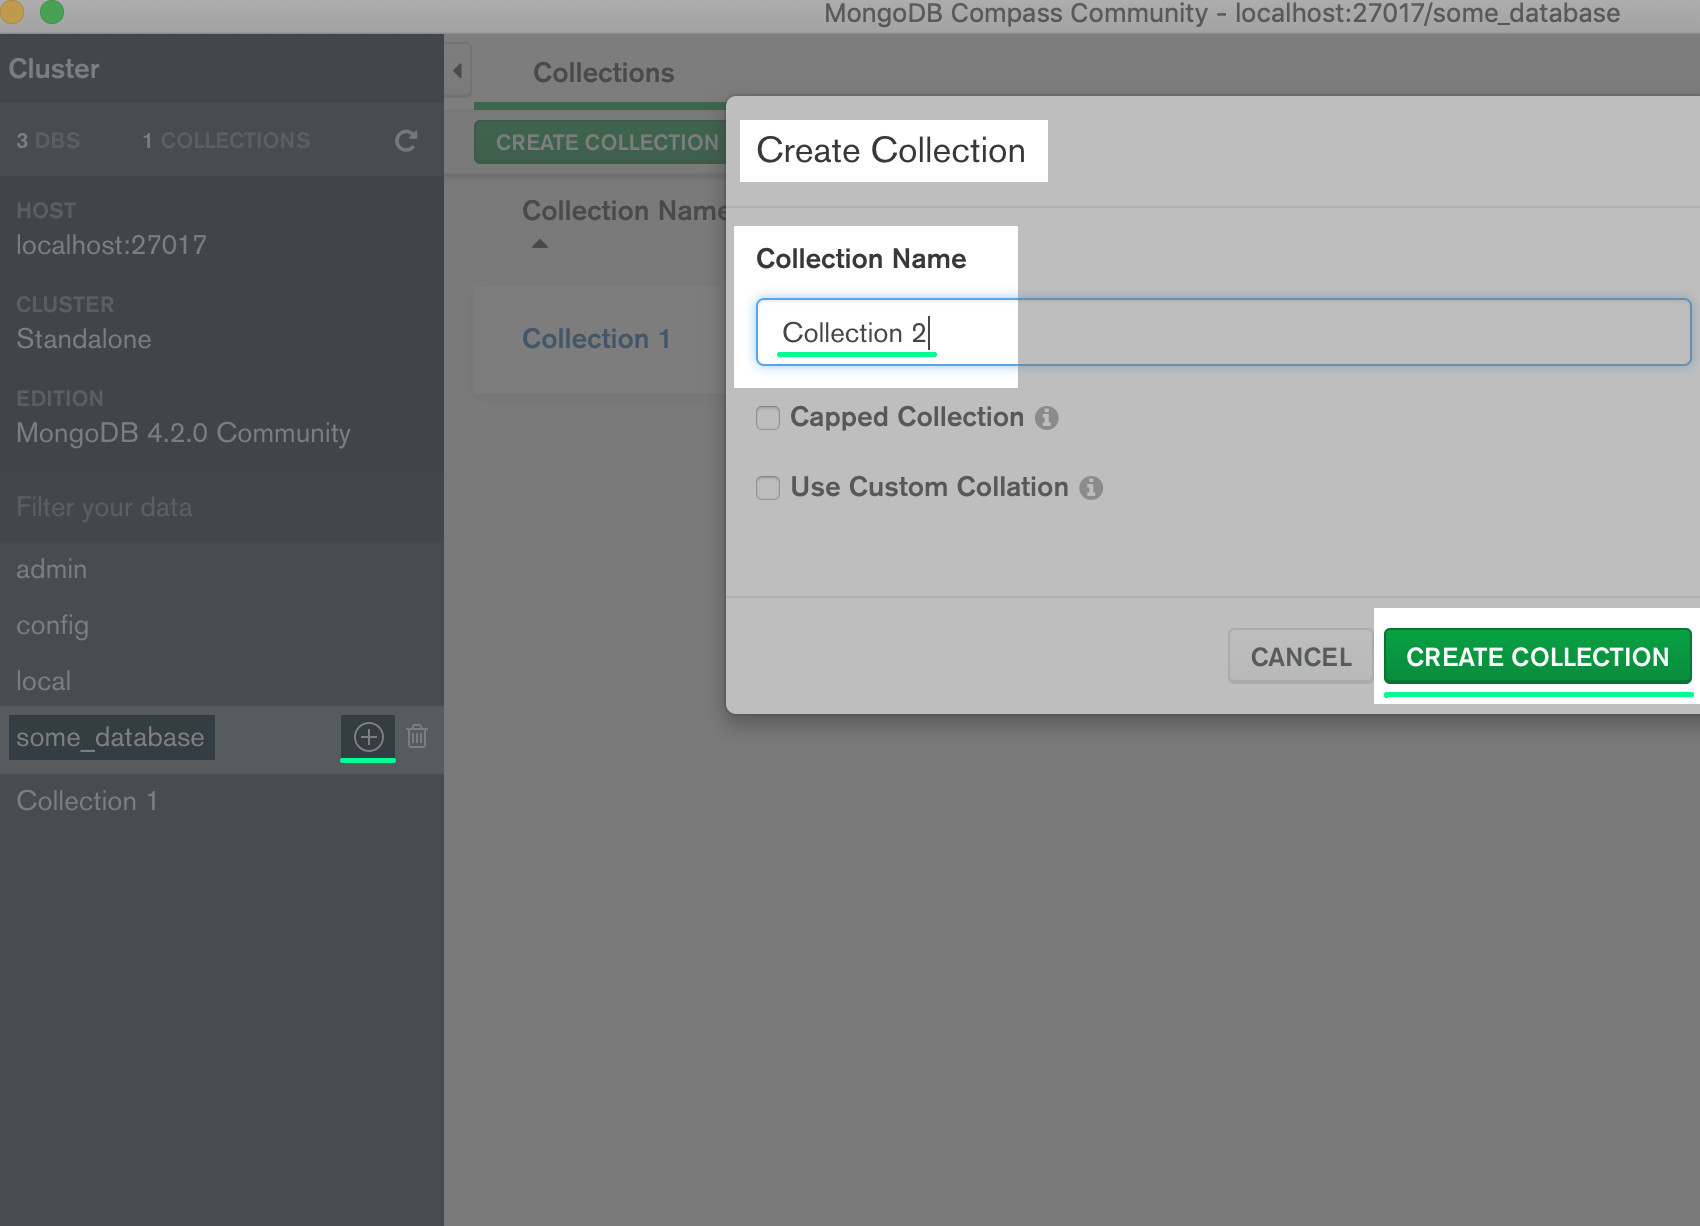 Screenshot of MongoDB Compass UI creating a collection